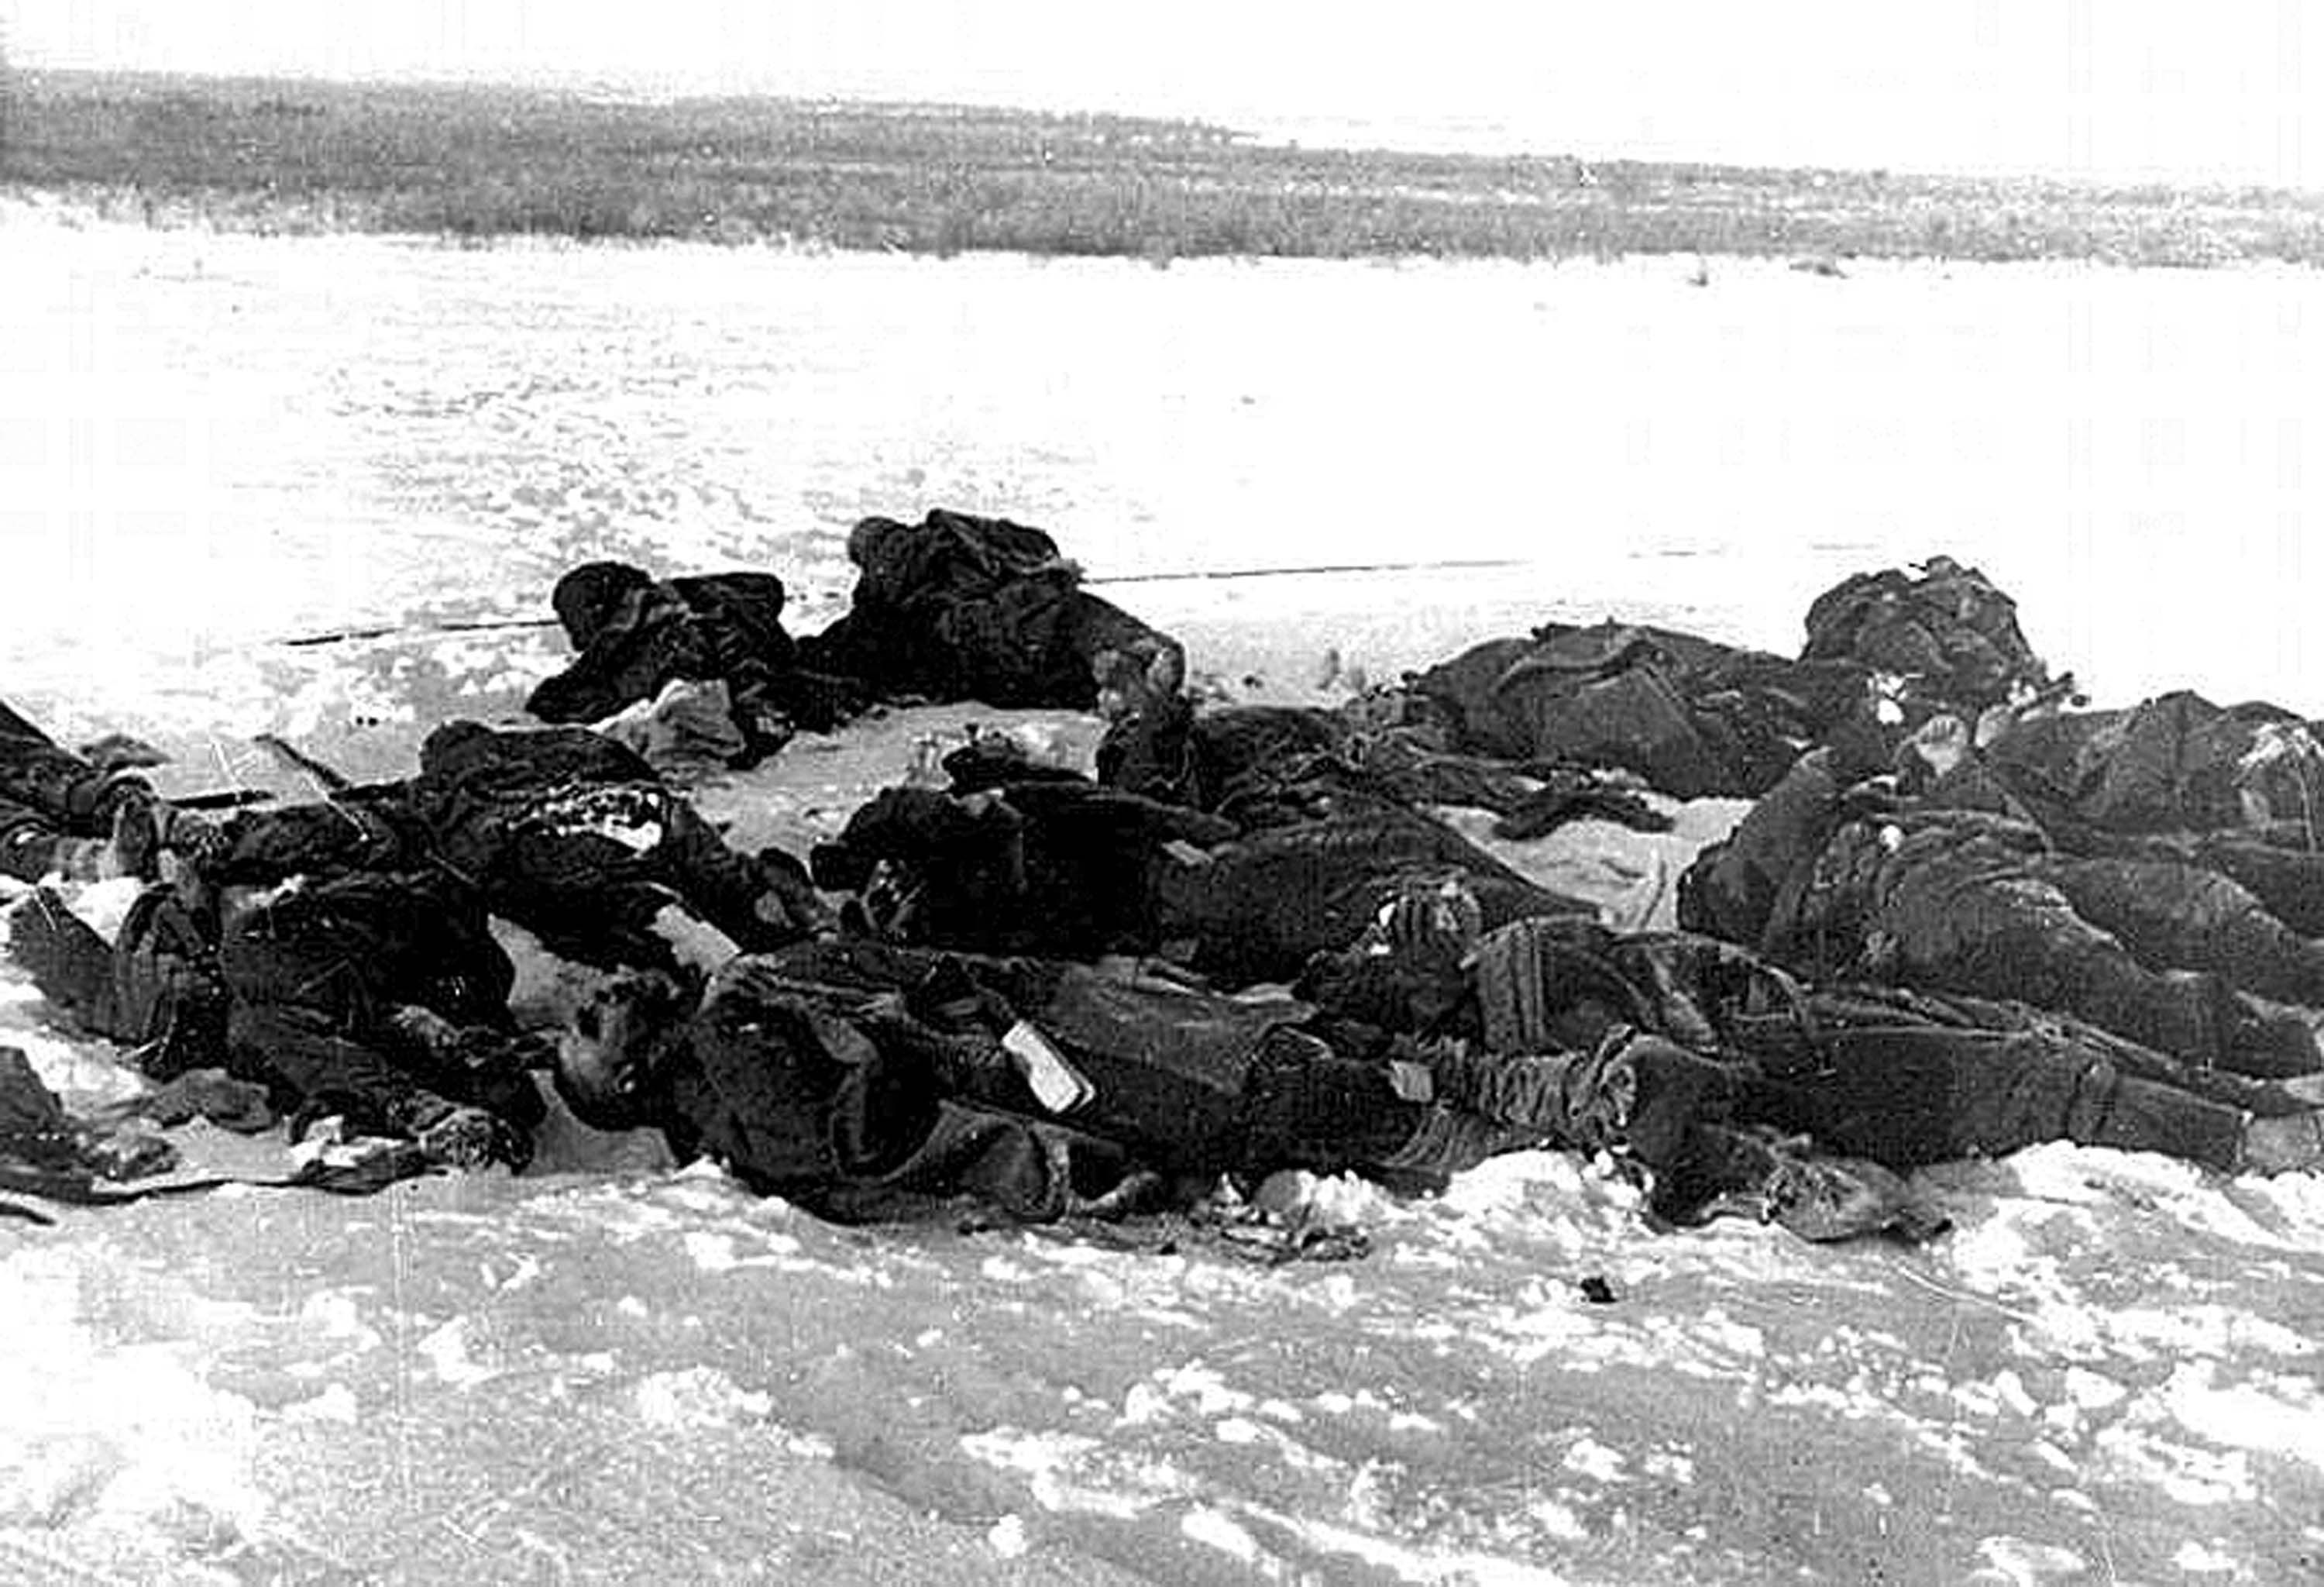 The dead Soviet soldiers